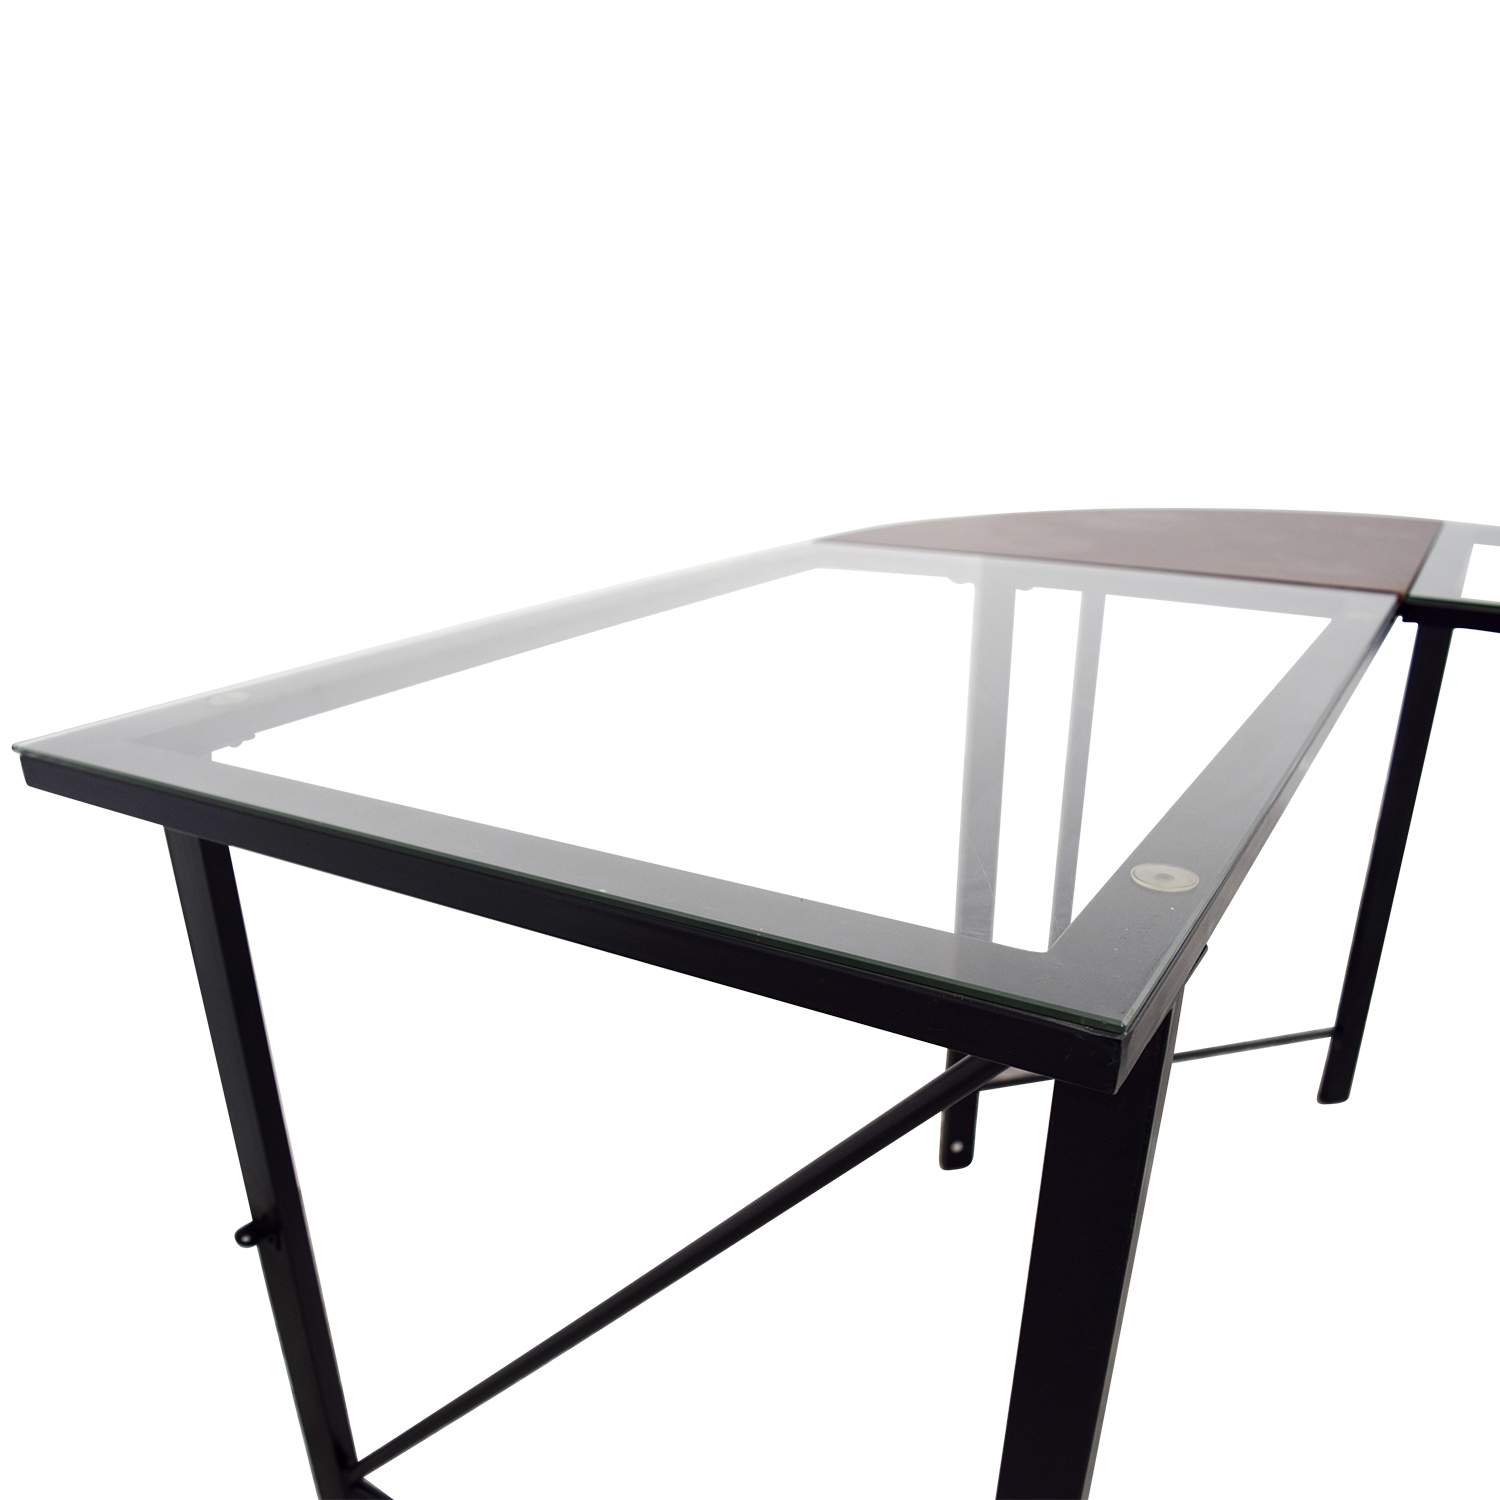 68% OFF Altra Furniture Altra Furniture Aden Corner Glass